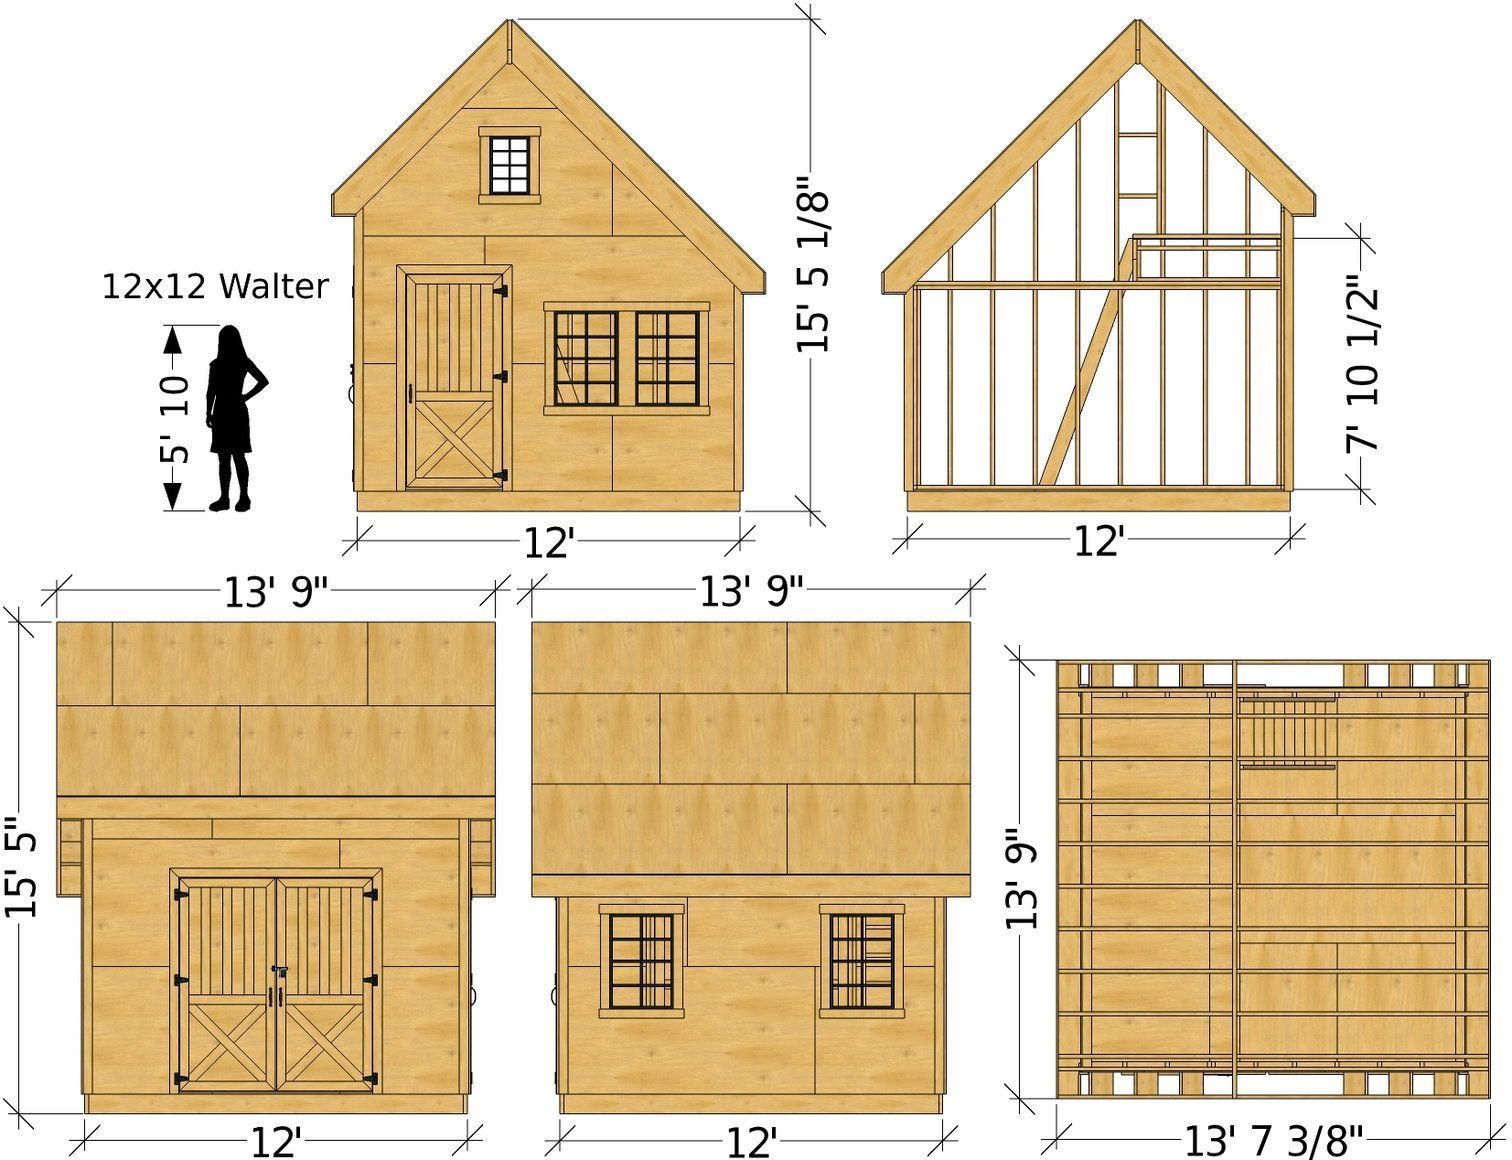 Walter Shed Plan 10x10 12x12 Sizes Gable Garden Shed W Loft Paul S Sheds Shed Plan Diy Shed Plans Shed Plans